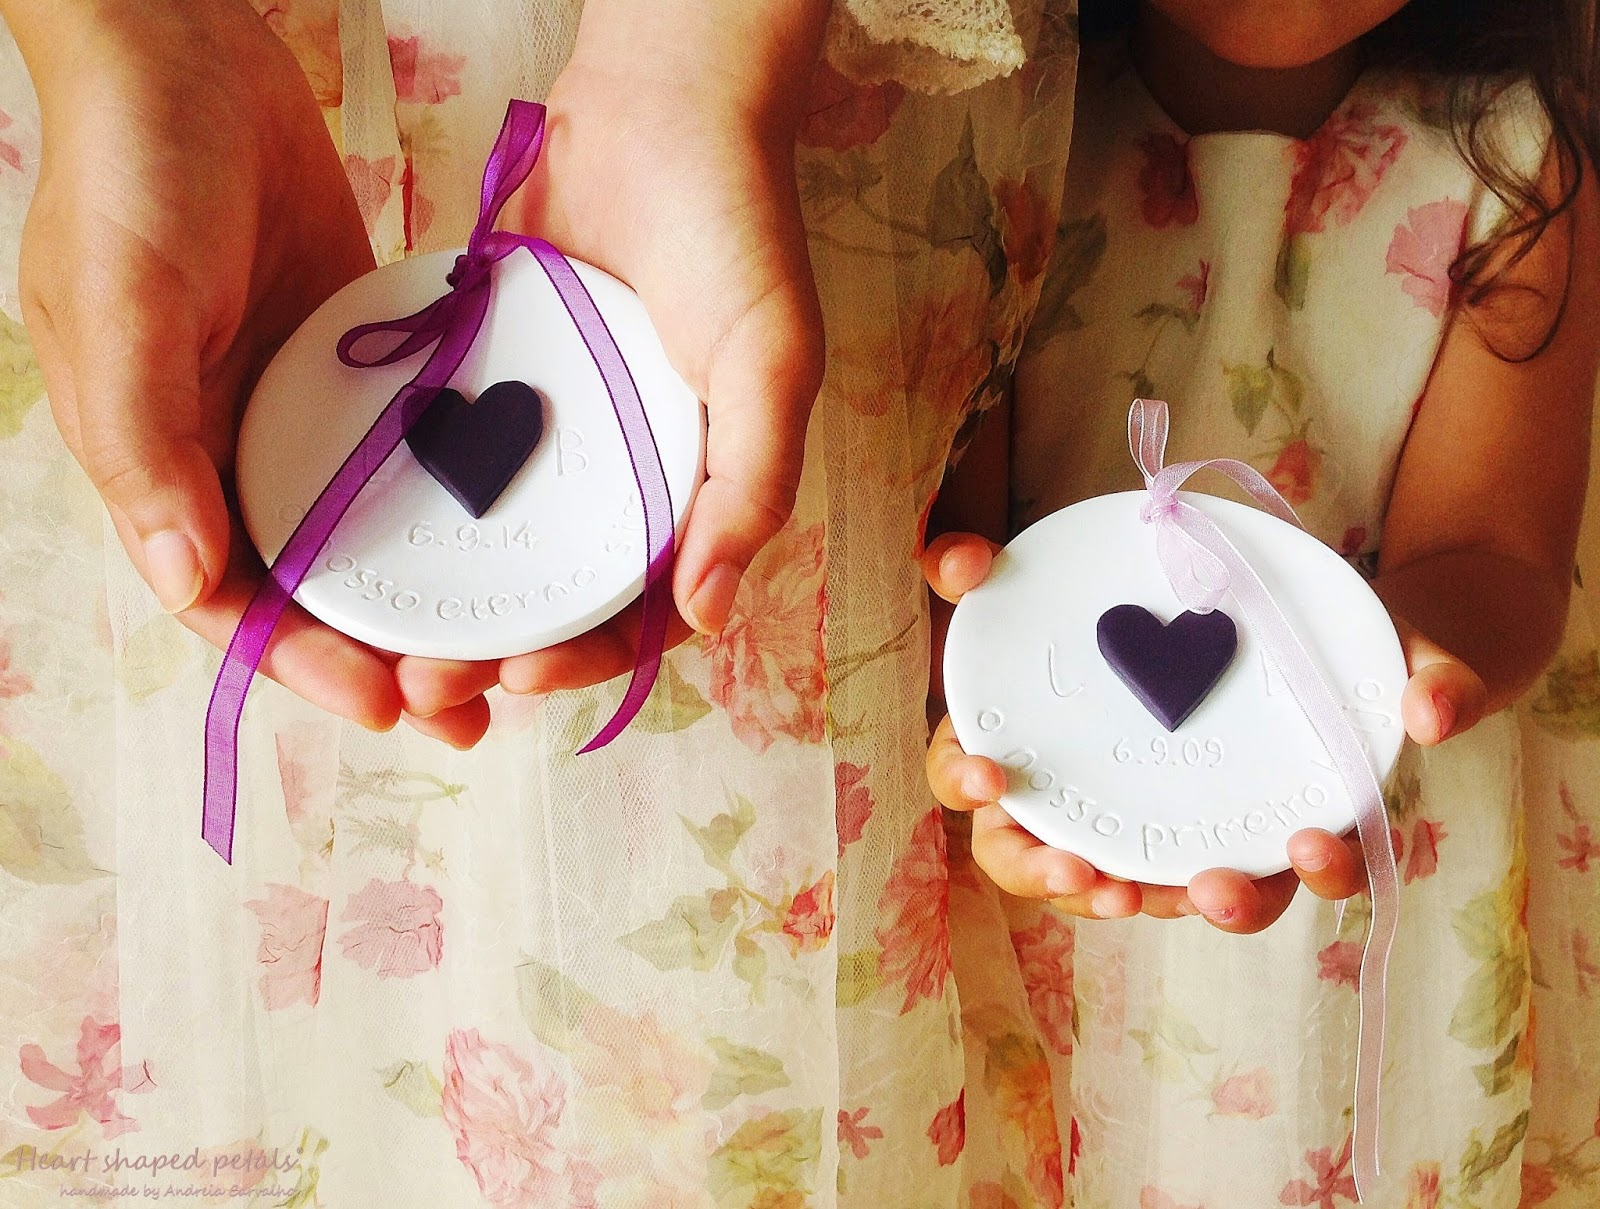 Ring bearer dish with heart